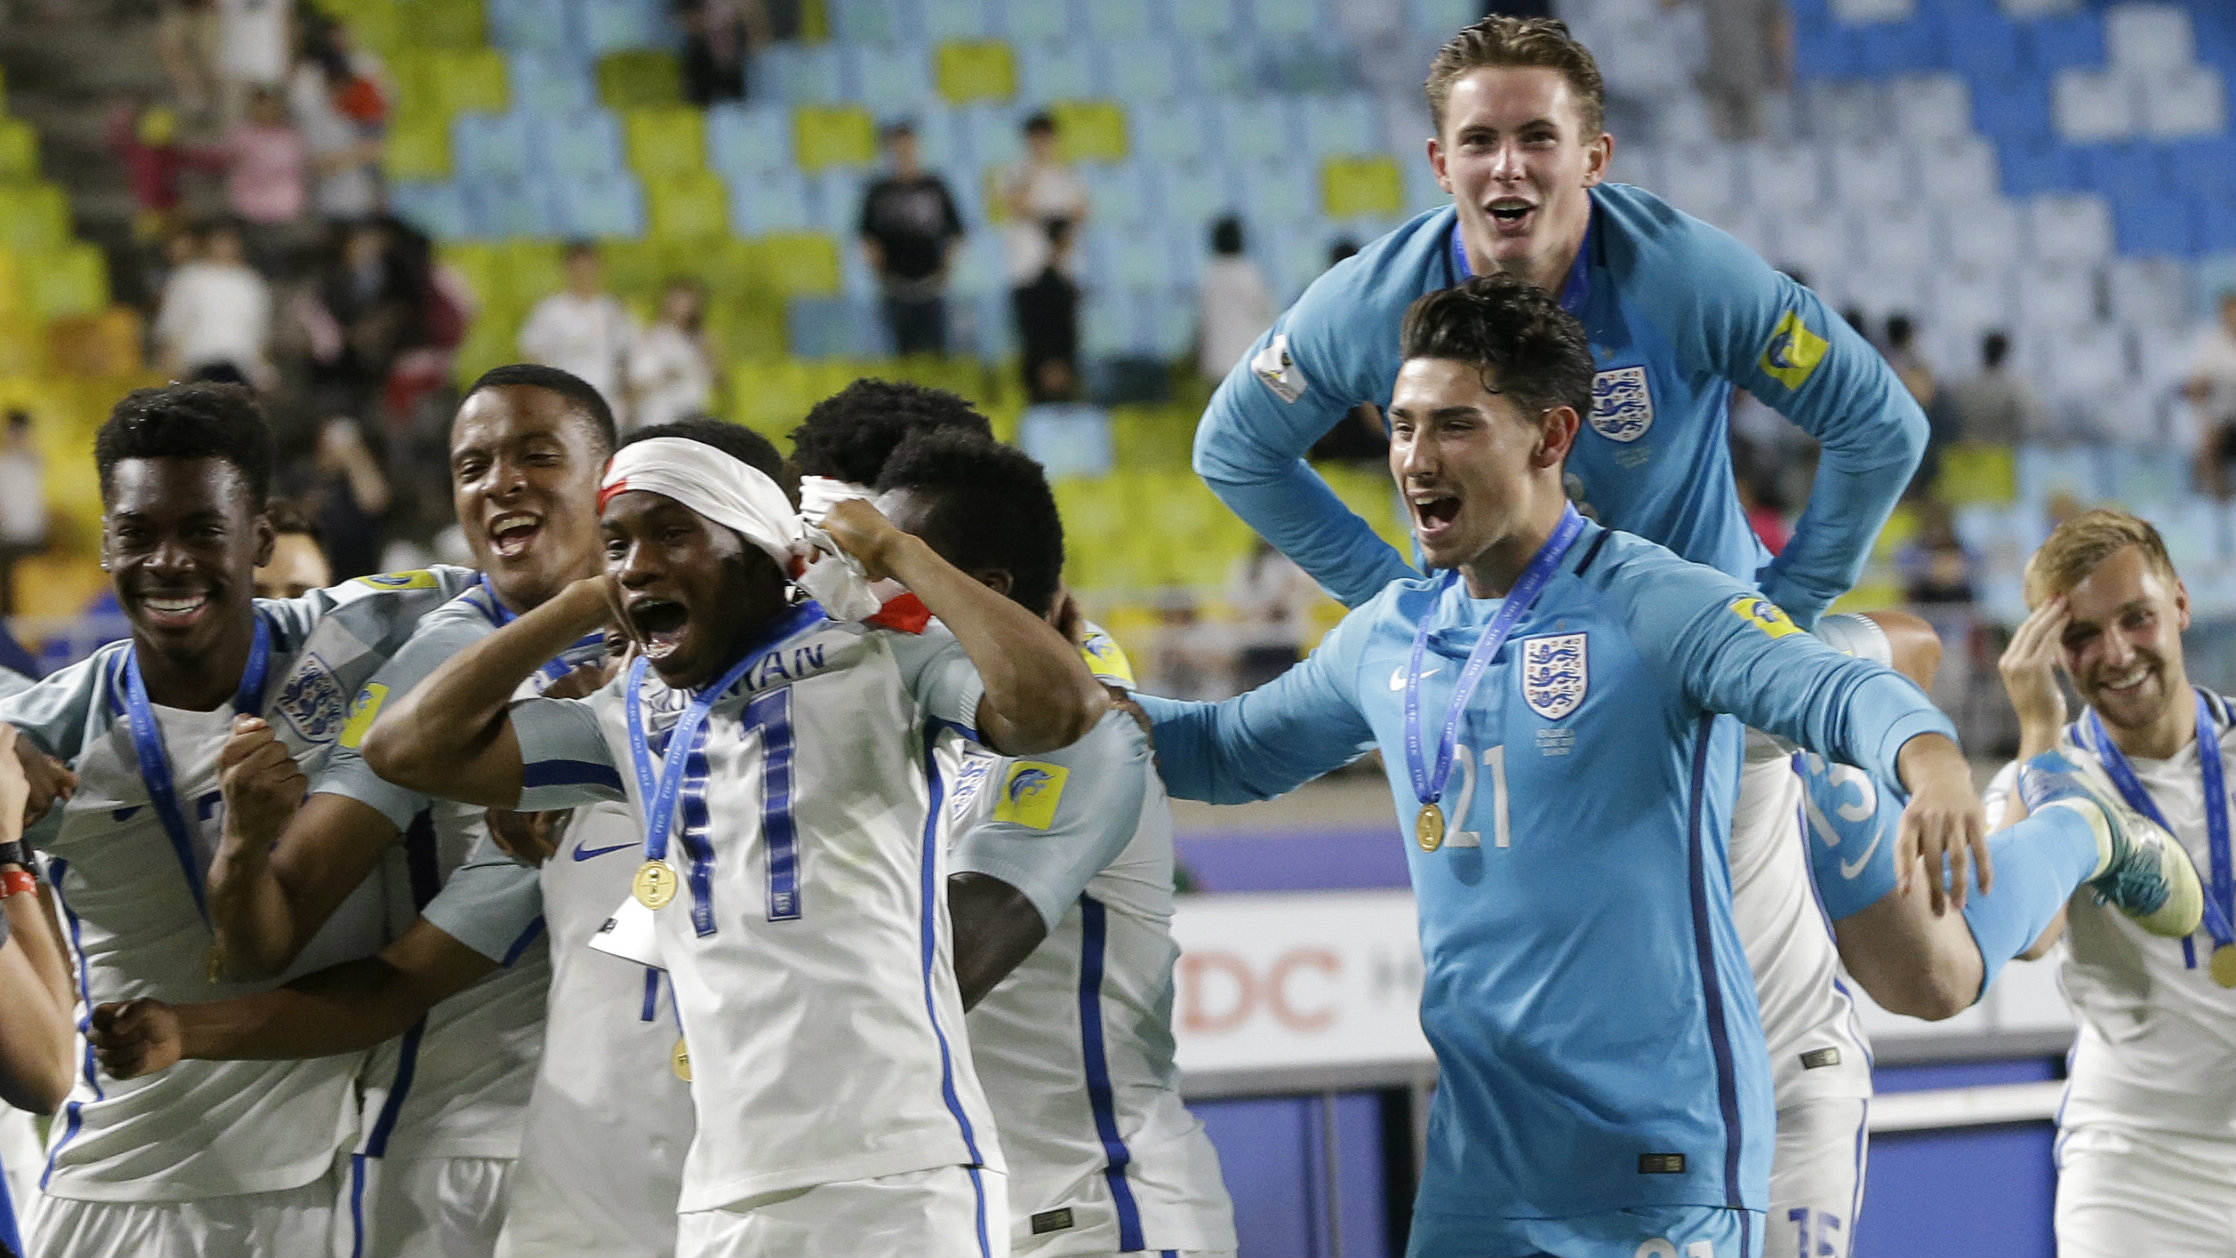 England players celebrate after defeating Venezuela 1-0 to win the final of the FIFA U-20 World Cup Korea 2017 at Suwon World Cup Stadium in Suwon, South Korea, Sunday, June 11, 2017.